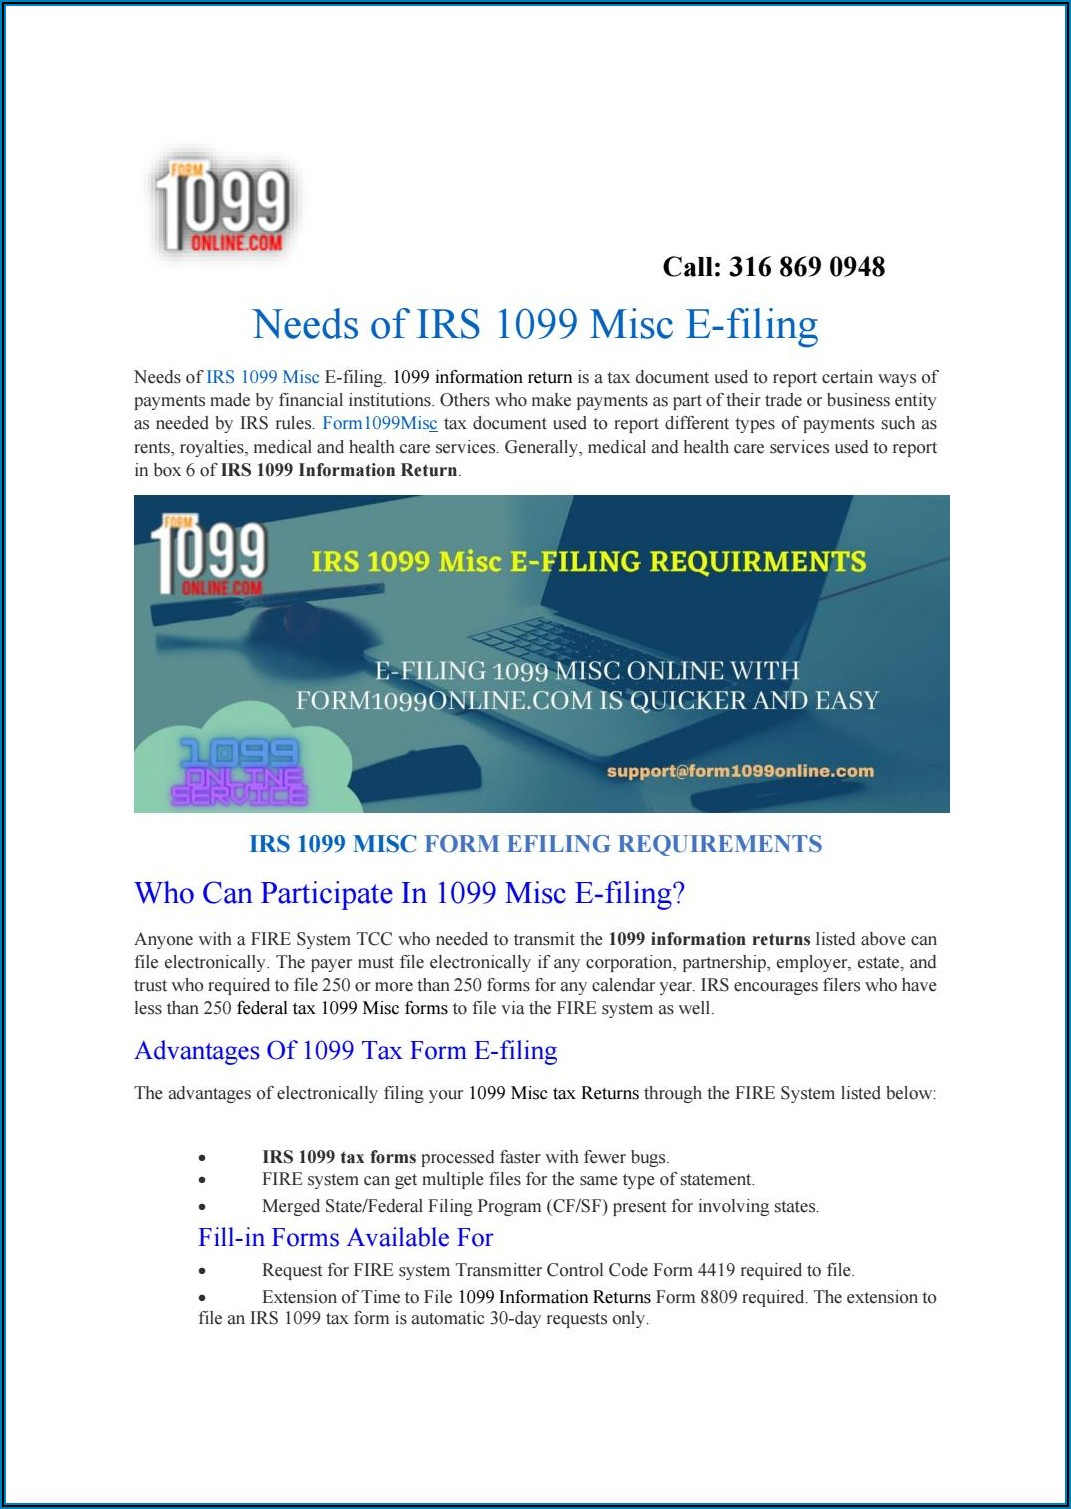 Form 1099 Electronic Filing Requirements